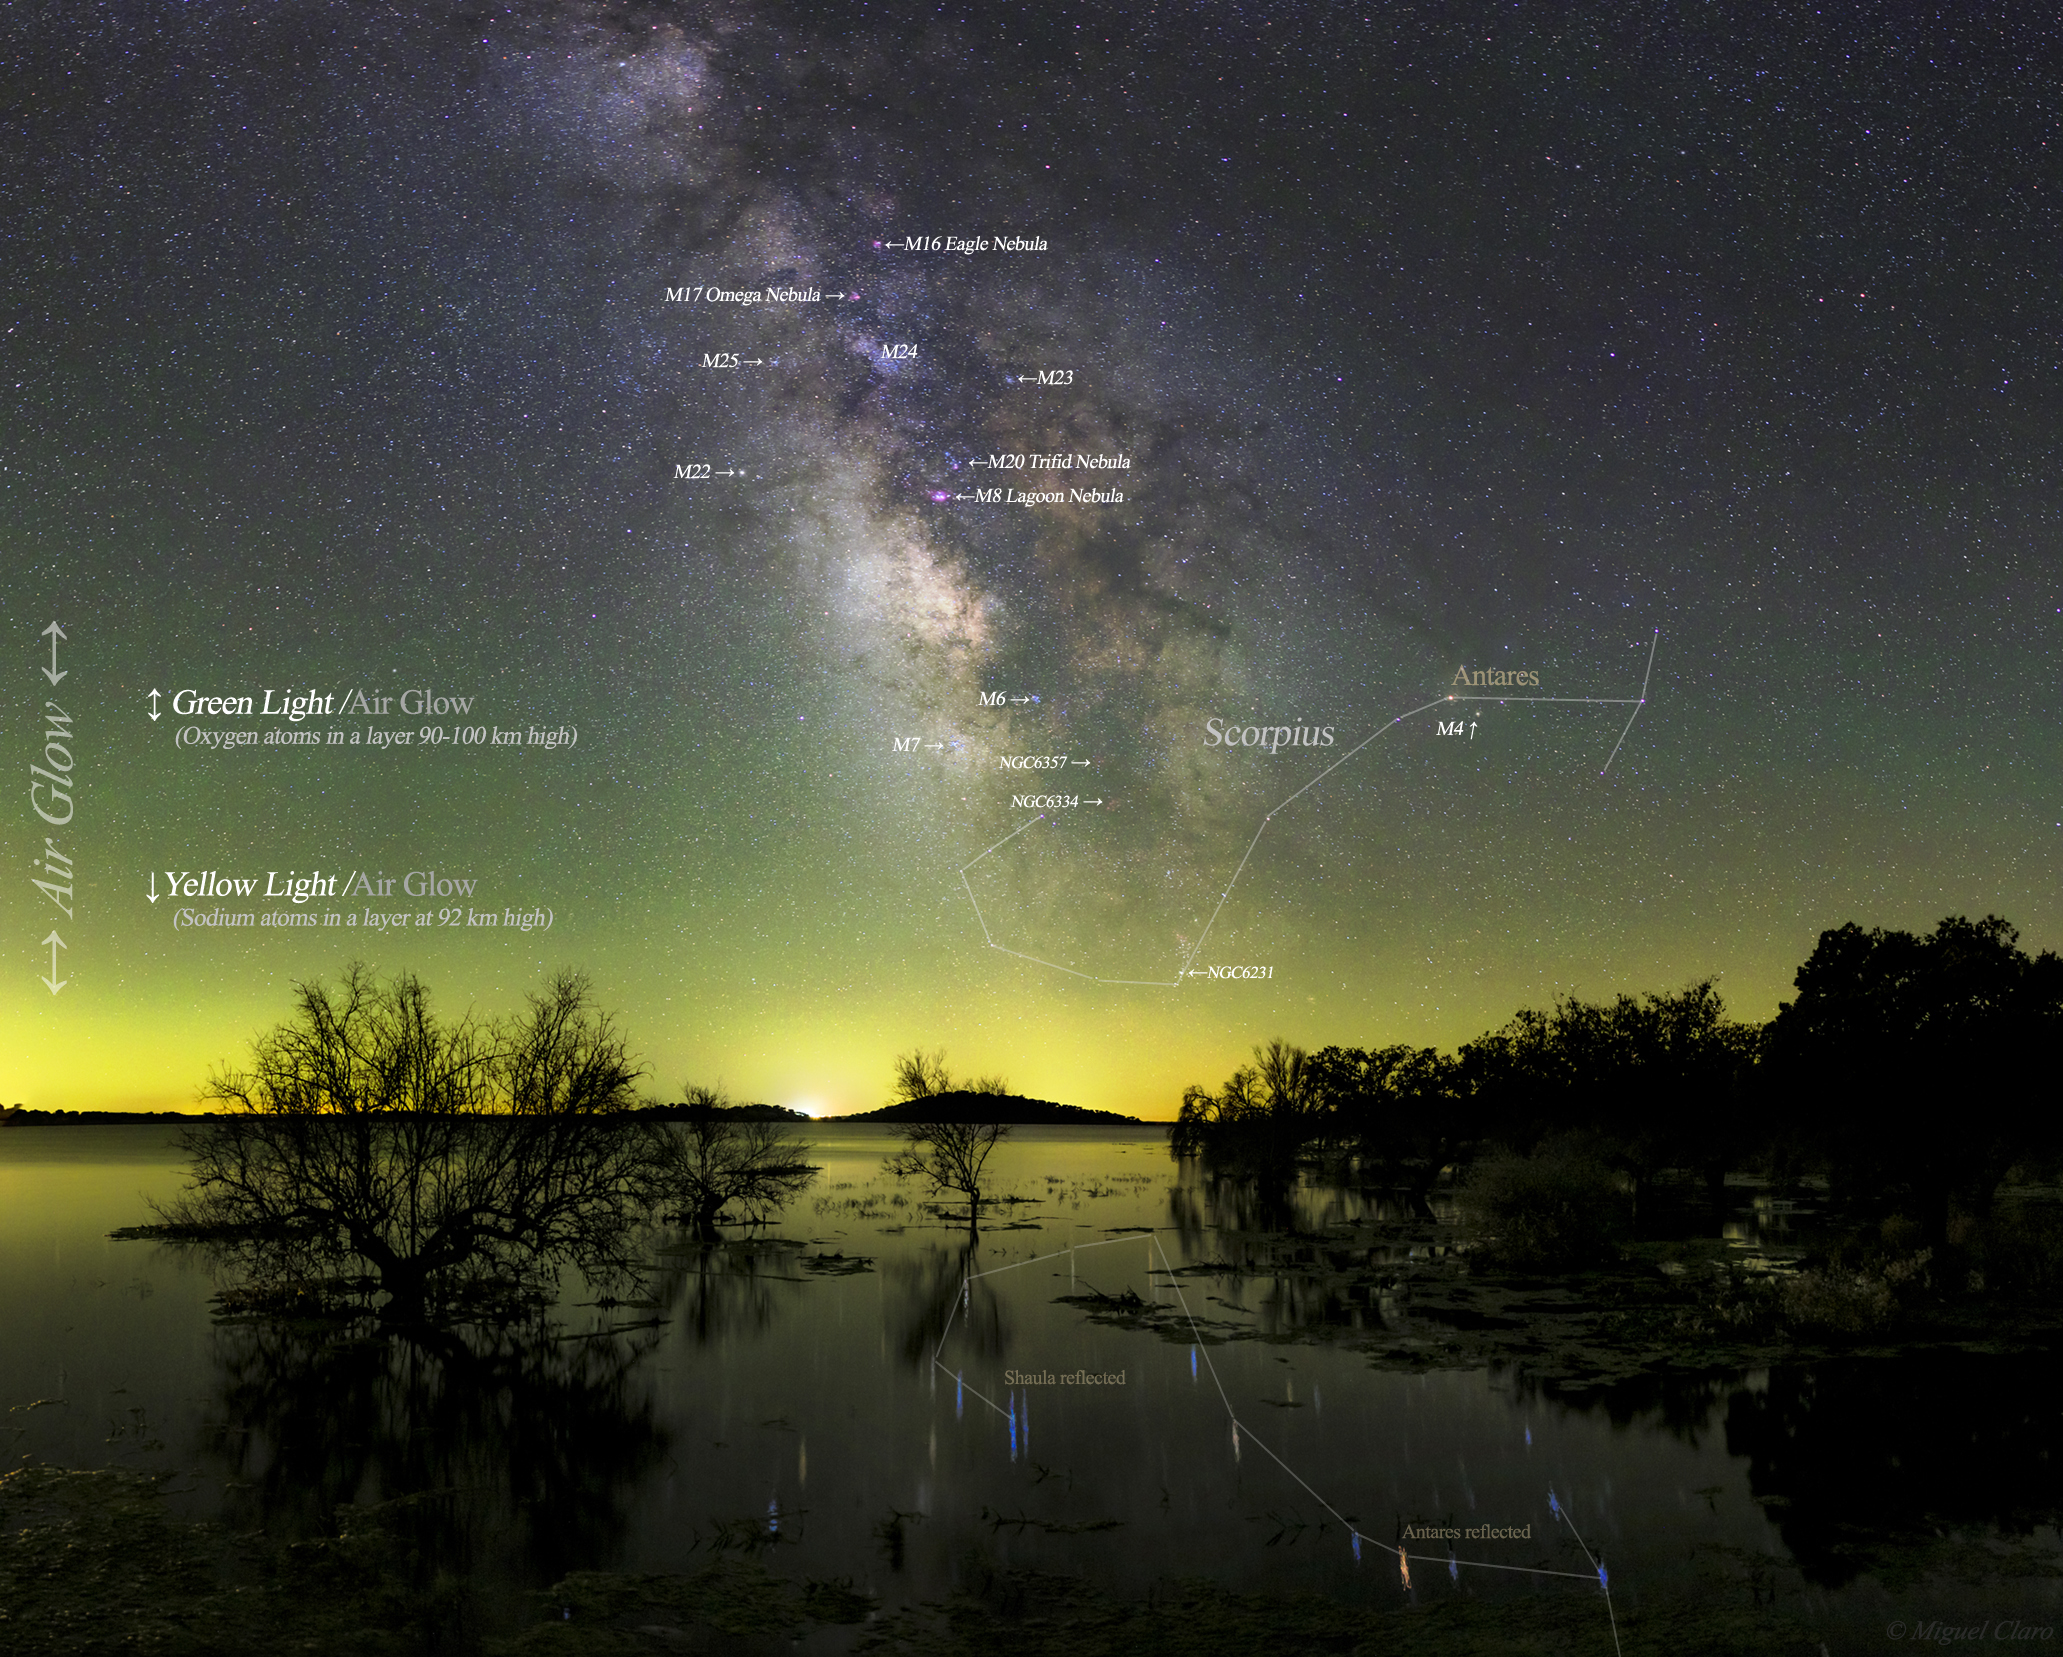 <h5>Air Glow, Milky Way and the Great Lake Alqueva (annotated version of the image)</h5>